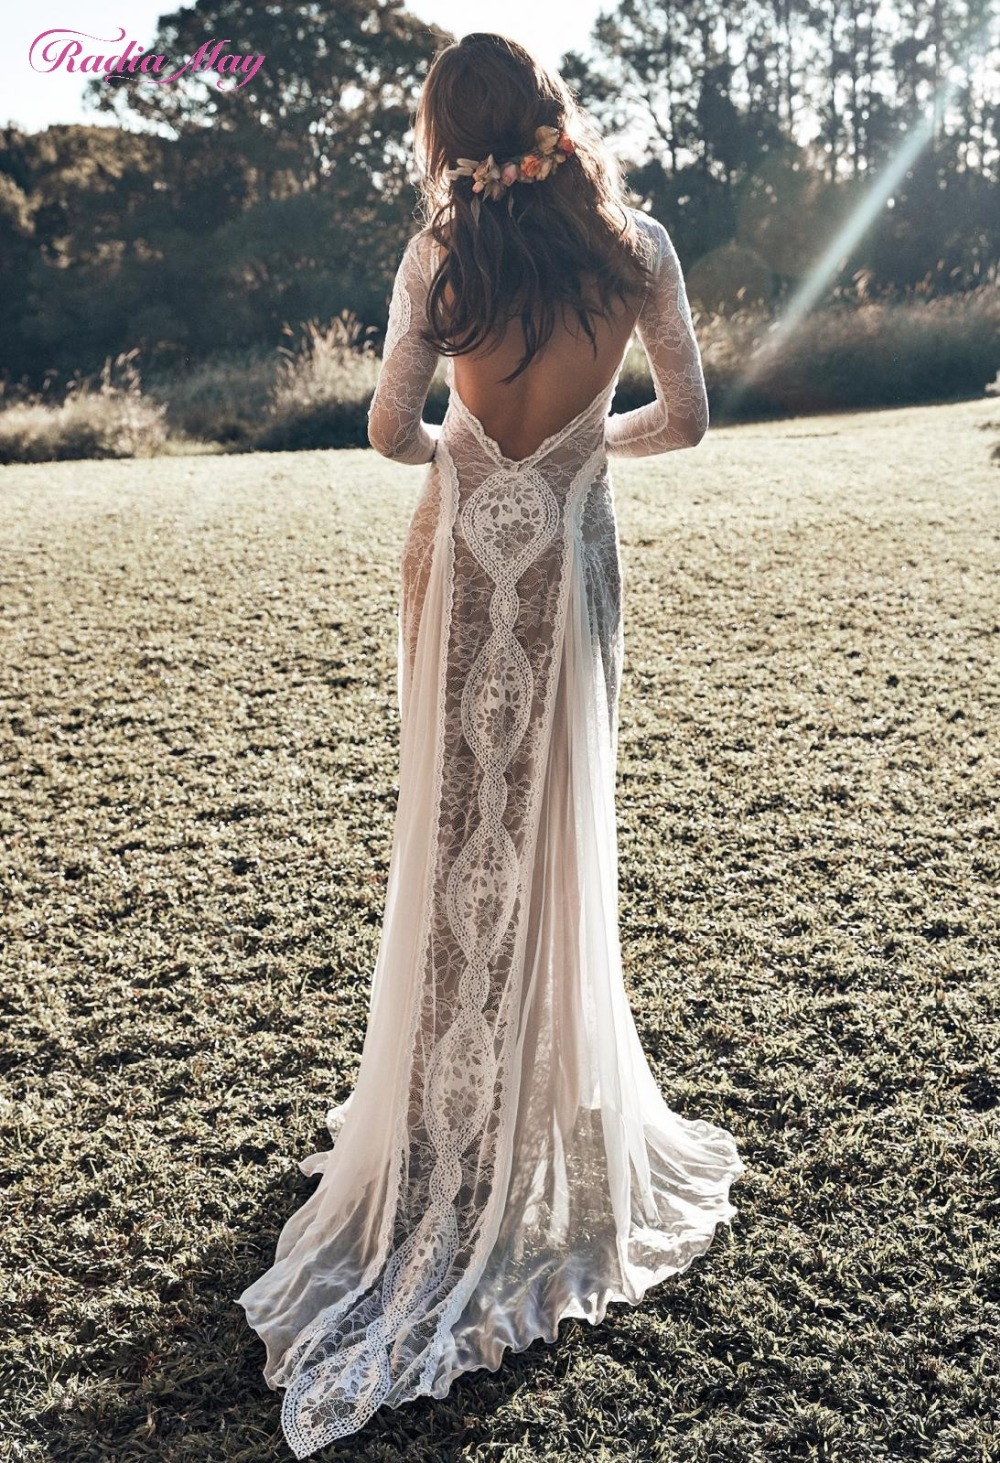 Vintage Lace Backless Boho Beach Wedding Dresses Long Sleeve Nude Lining Country Bohemian Wedding Gowns Hippie Gypsy Bride Dress